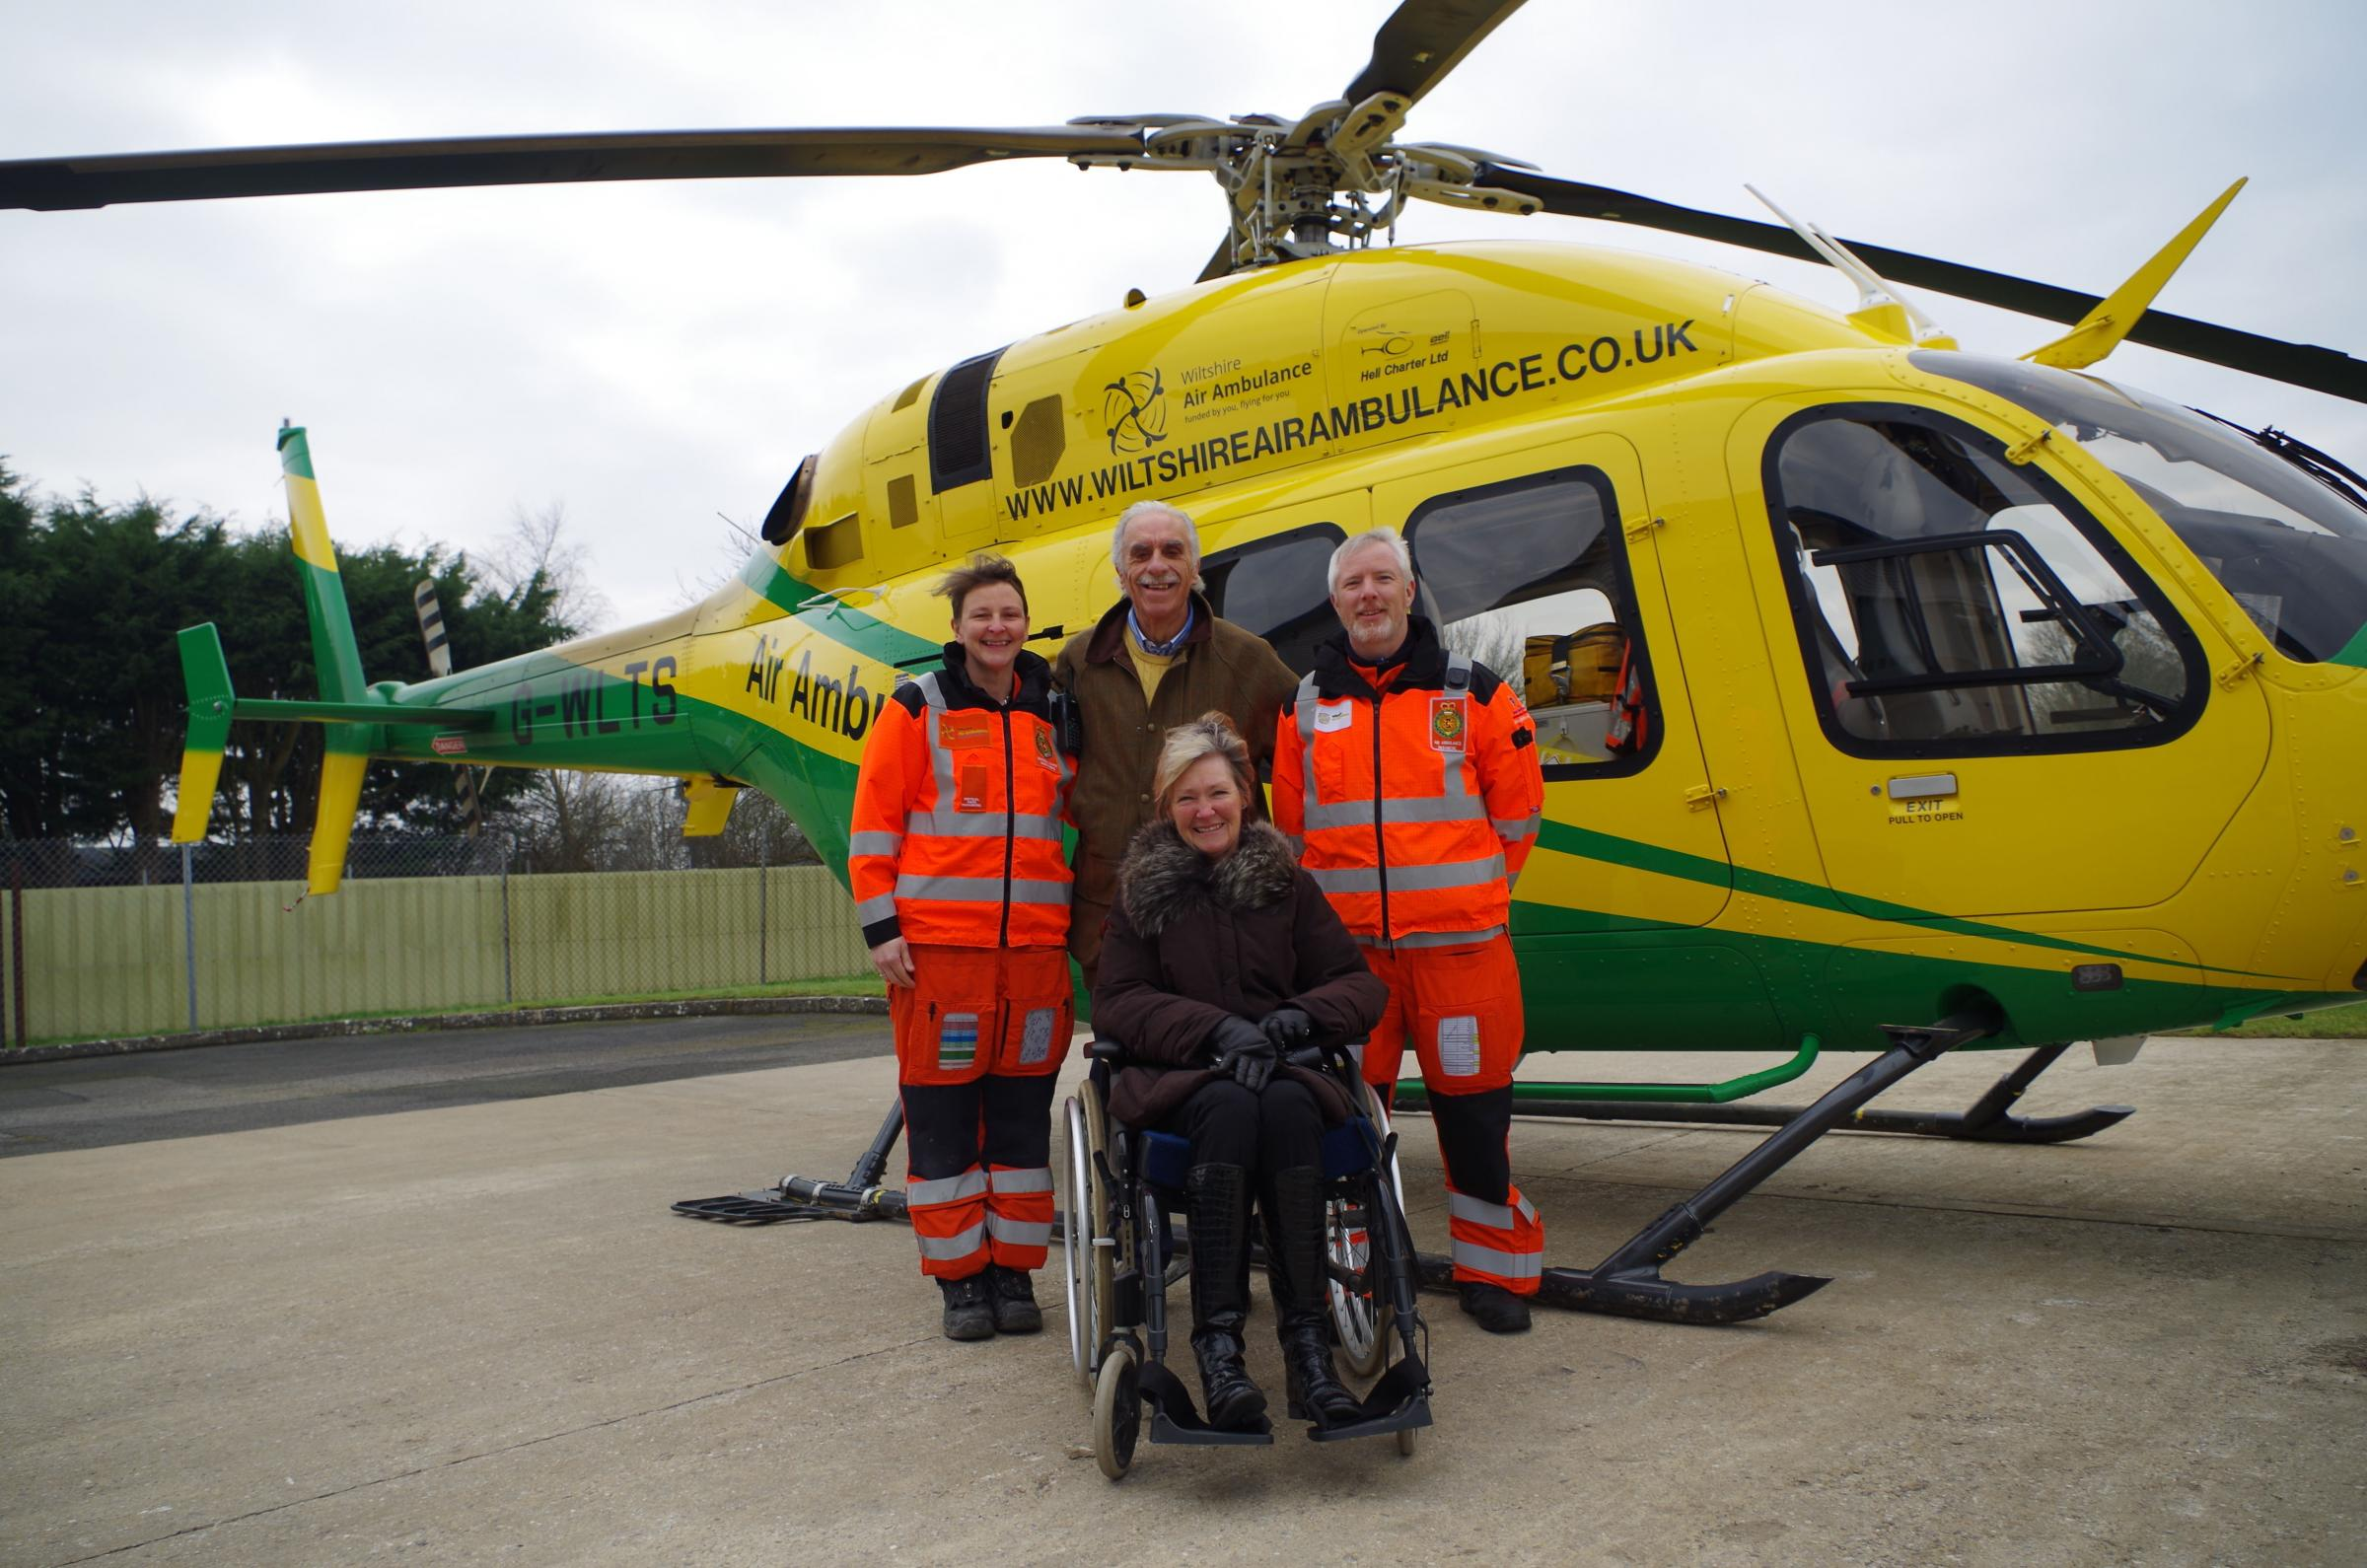 Annette Tavener with her husband Peter and Wiltshire Air Ambulance paramedics Louise Cox and Steve Riddle.